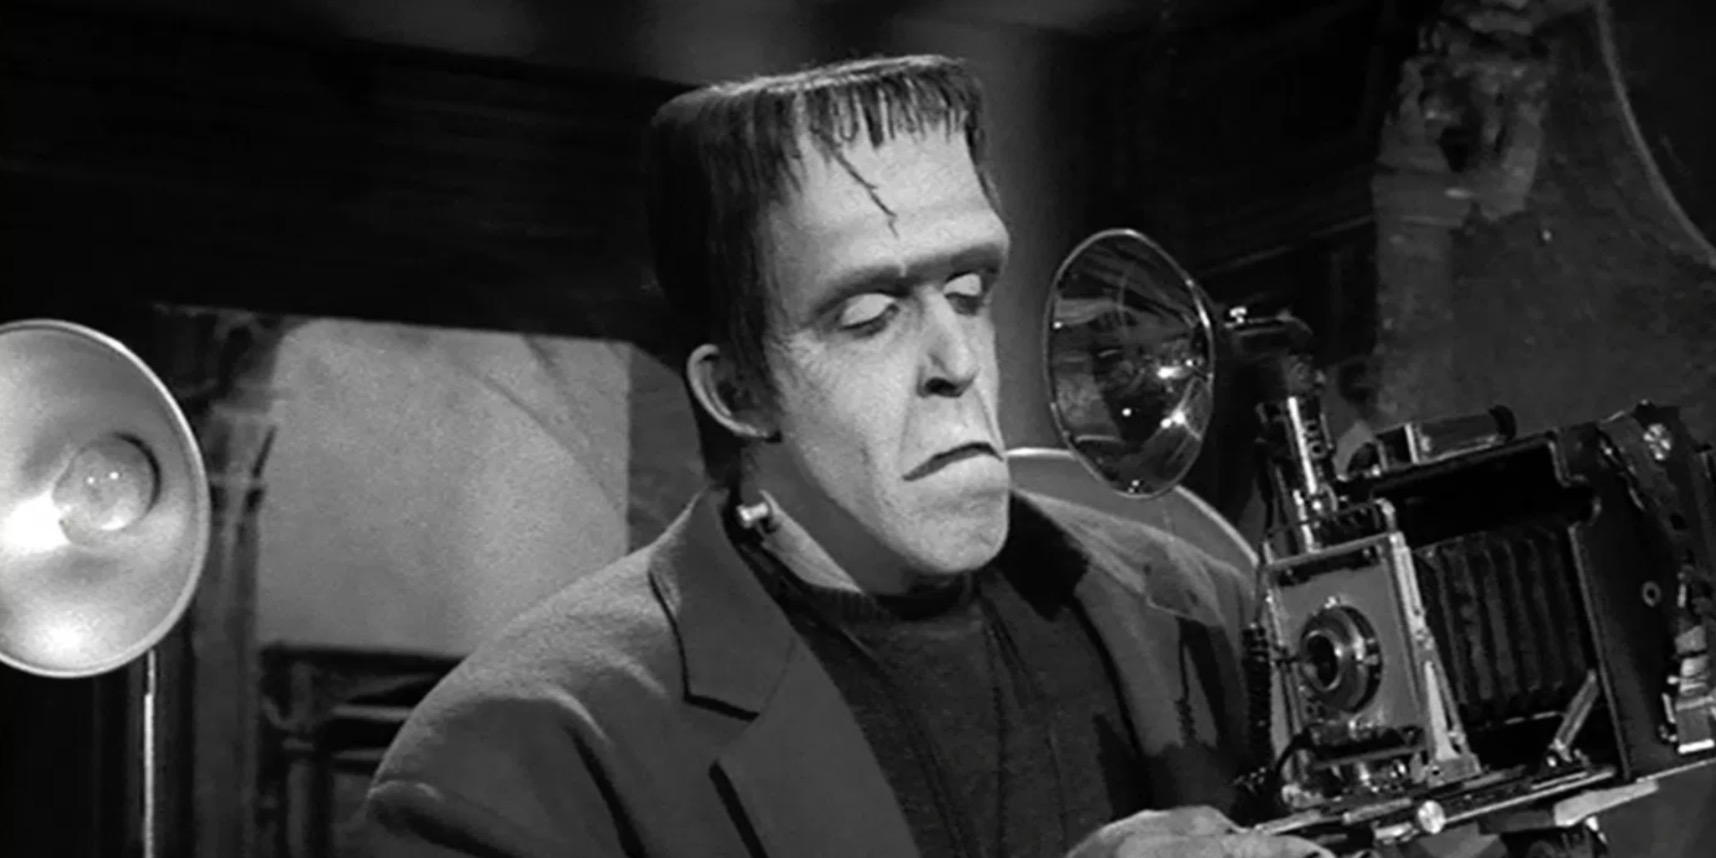 60s tv show main character, tv, the munsters